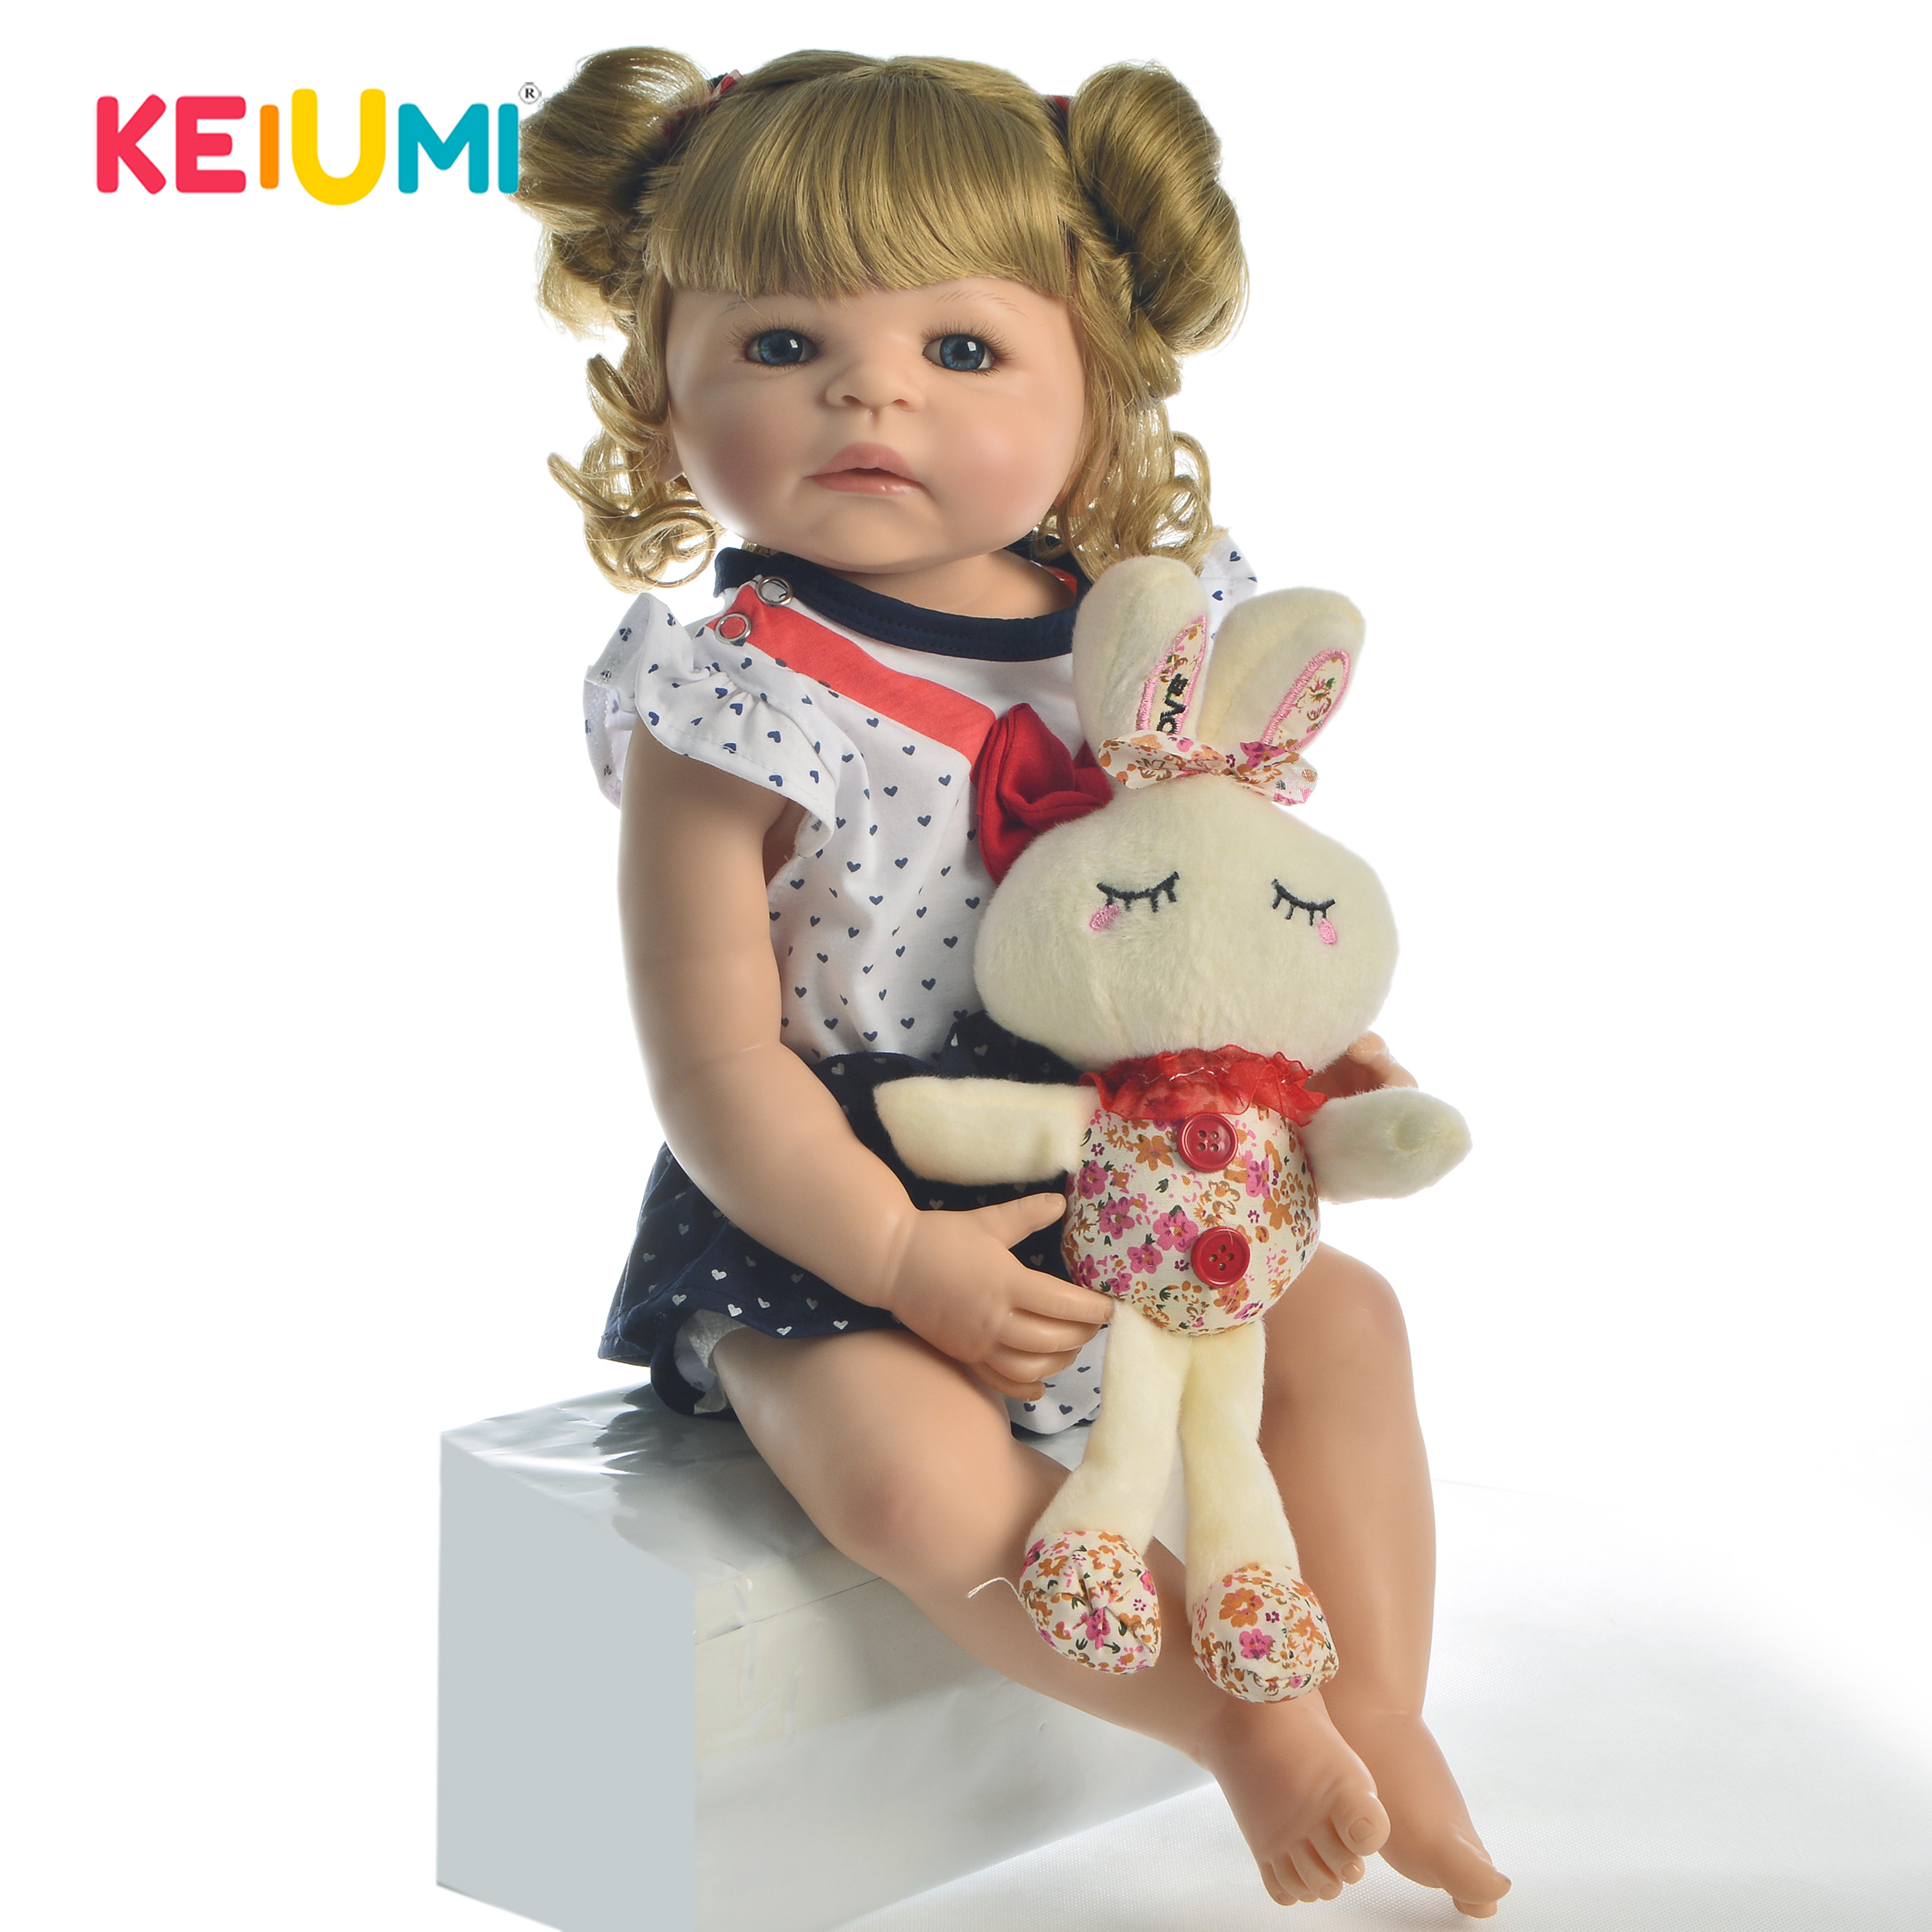 KEIUMI Hot Sale Realistic Reborn Doll Full Silicone 55 cm Real Looking Fake Baby Toy For Kids Playmate Gift Xmas PresentKEIUMI Hot Sale Realistic Reborn Doll Full Silicone 55 cm Real Looking Fake Baby Toy For Kids Playmate Gift Xmas Present